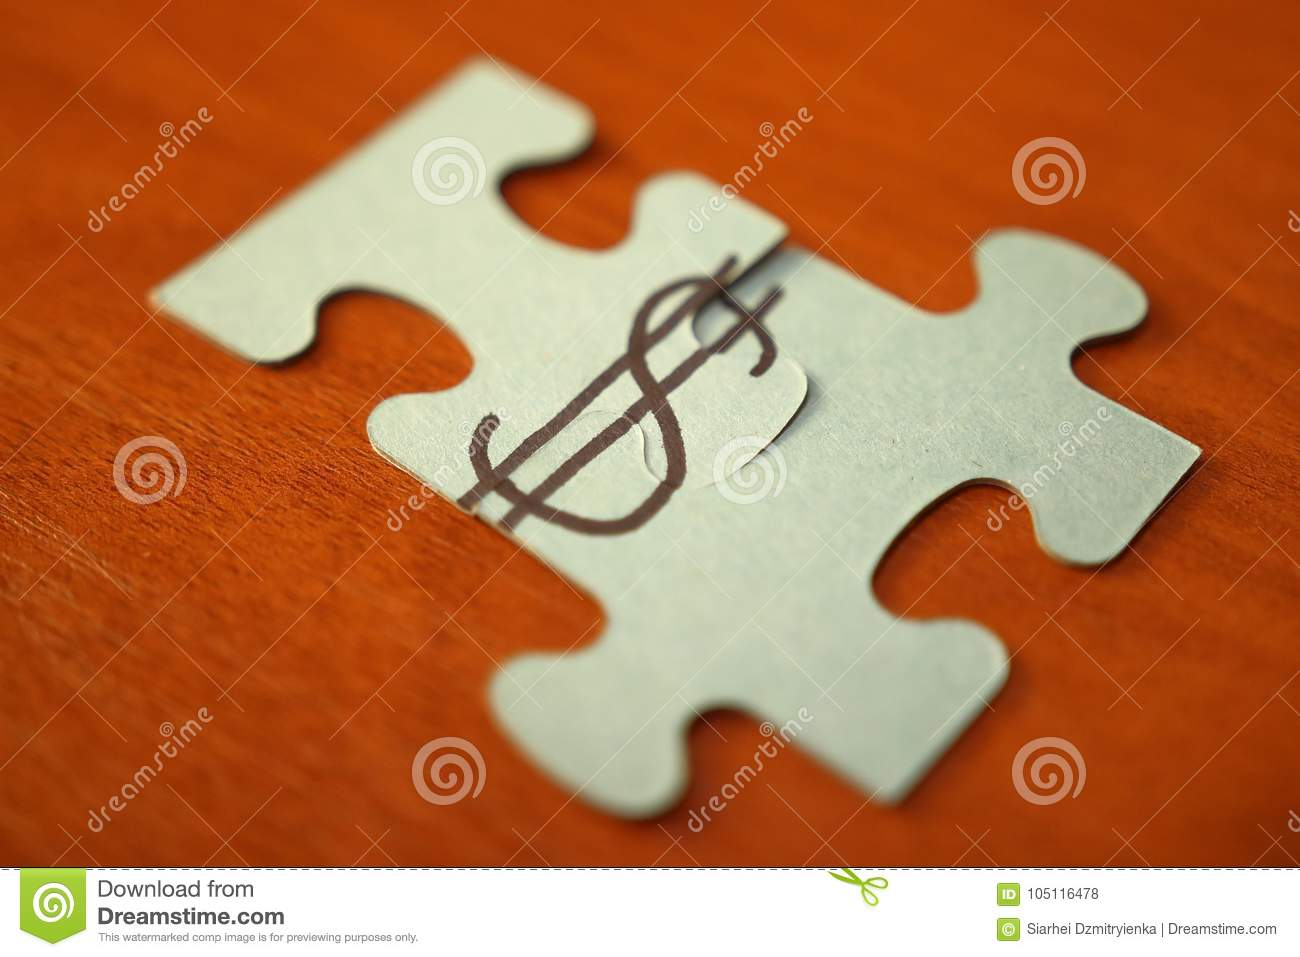 Make money concept. Puzzles puts in dollar sign. dollar sign on two parts of puzzle on wooden table. Money, capital, business.